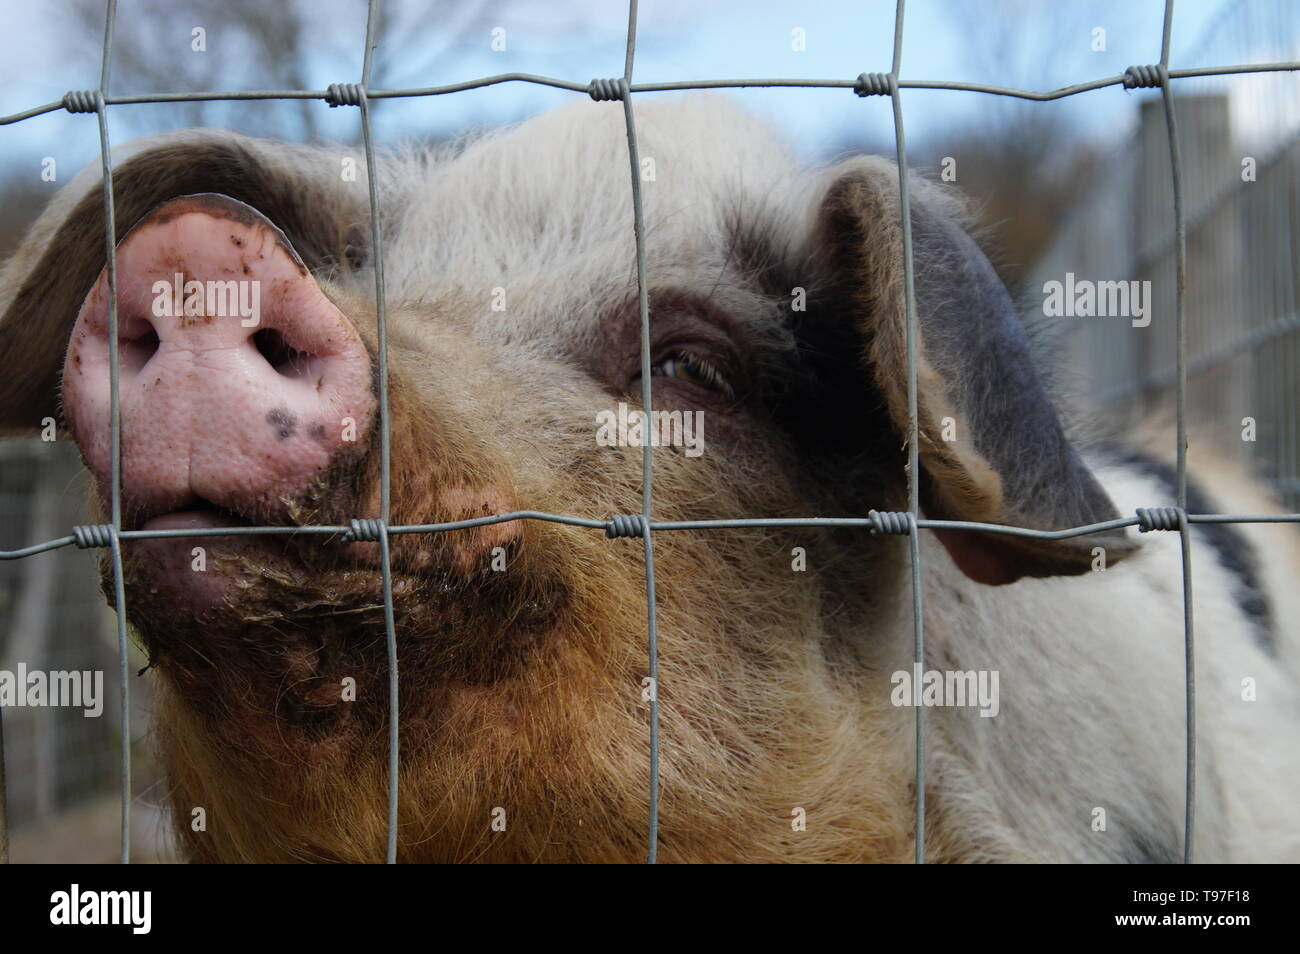 Dirty woolly pig behind a fence. - Stock Image